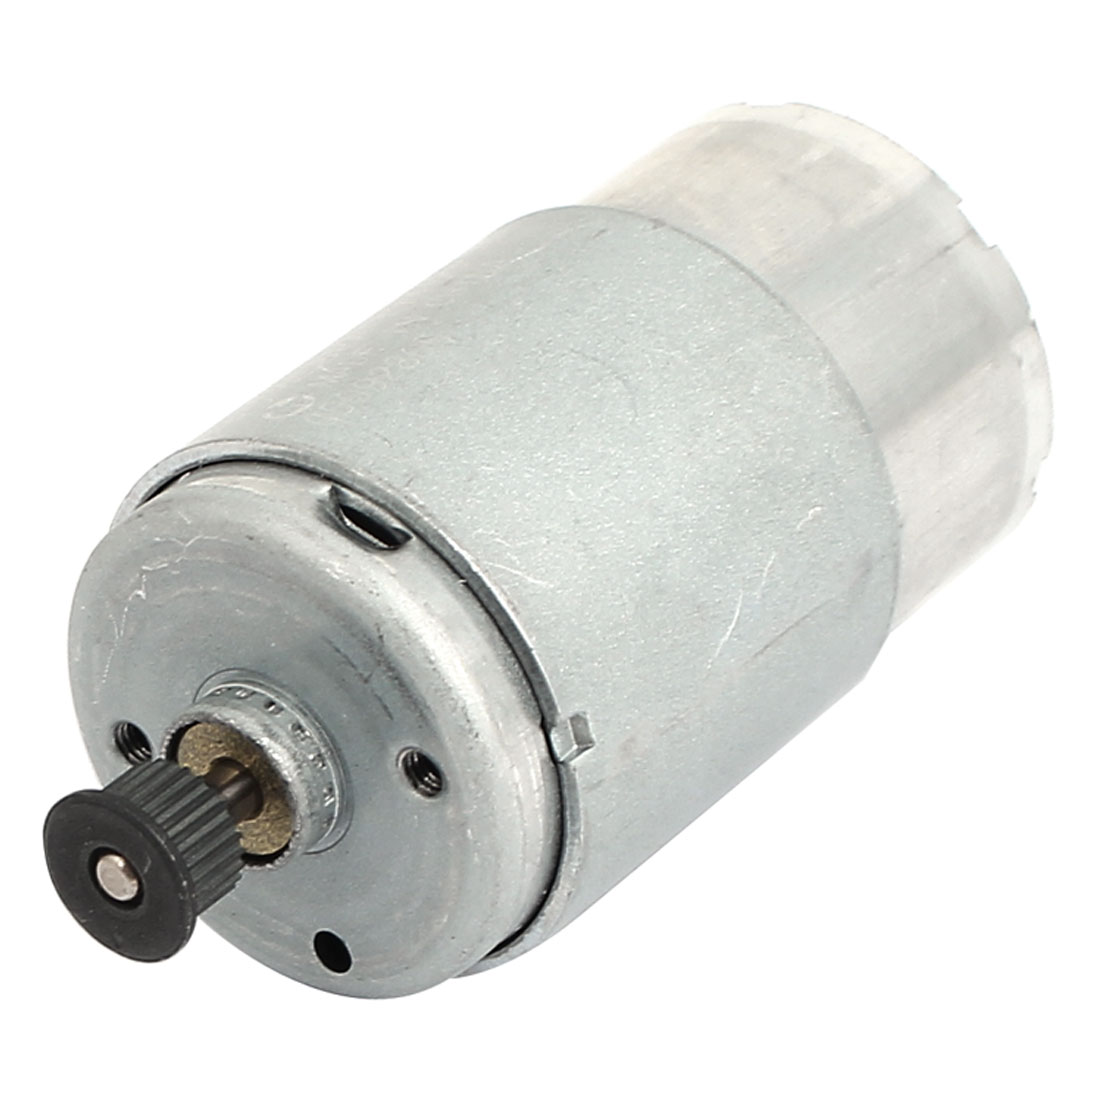 DC12V 2700RPM 32mm Dia Electric Gearbox Wind Power Gear Motor